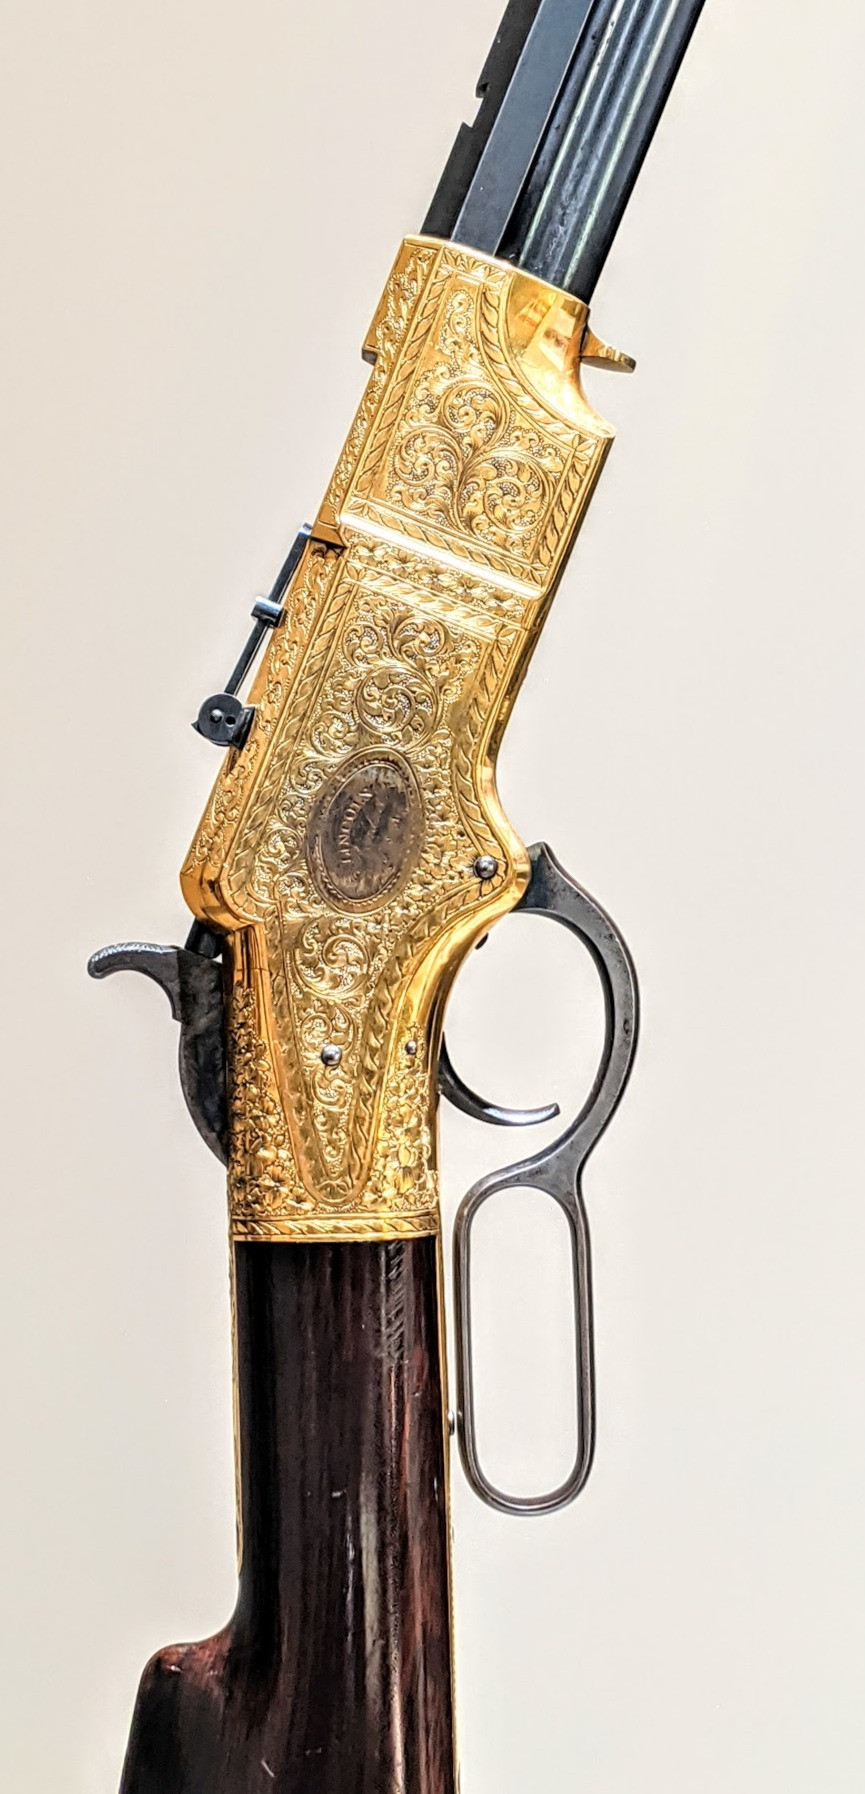 Abraham Lincoln's Henry rifle